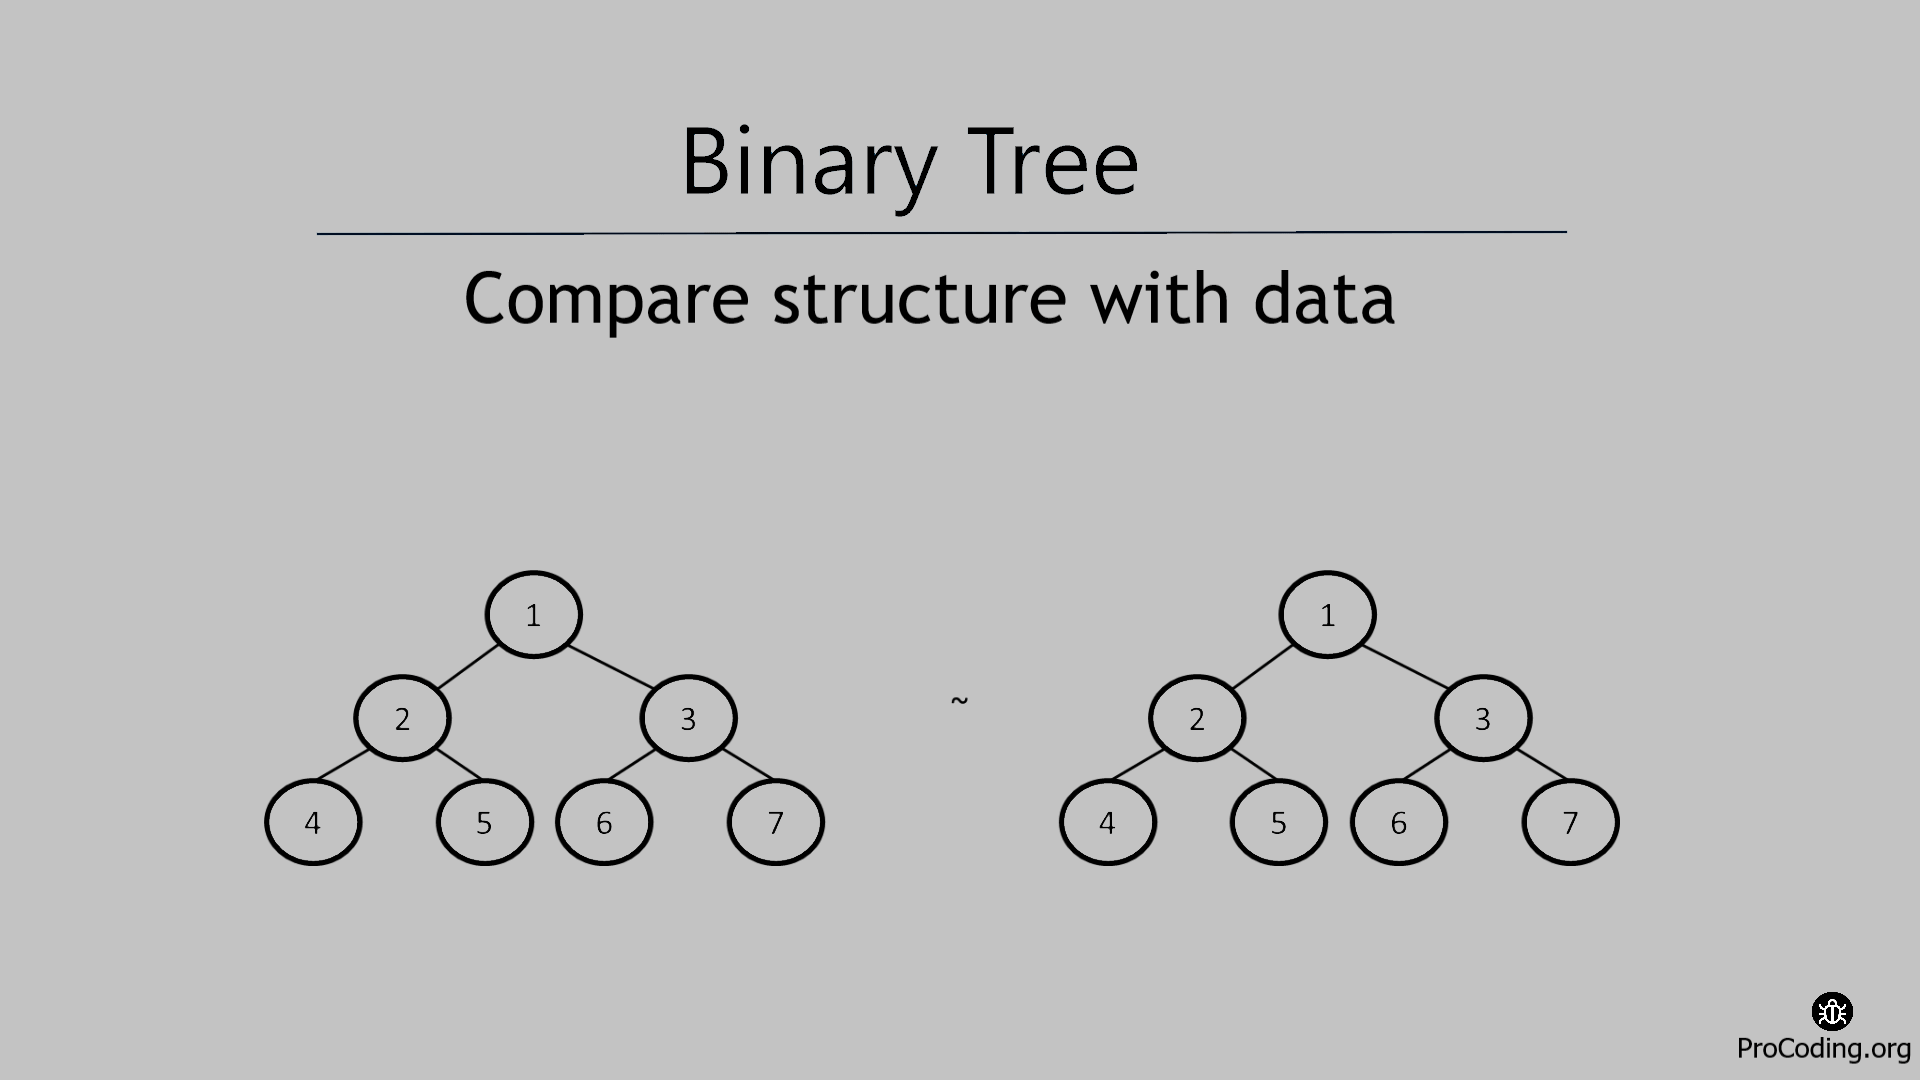 Number of half nodes in a binary tree